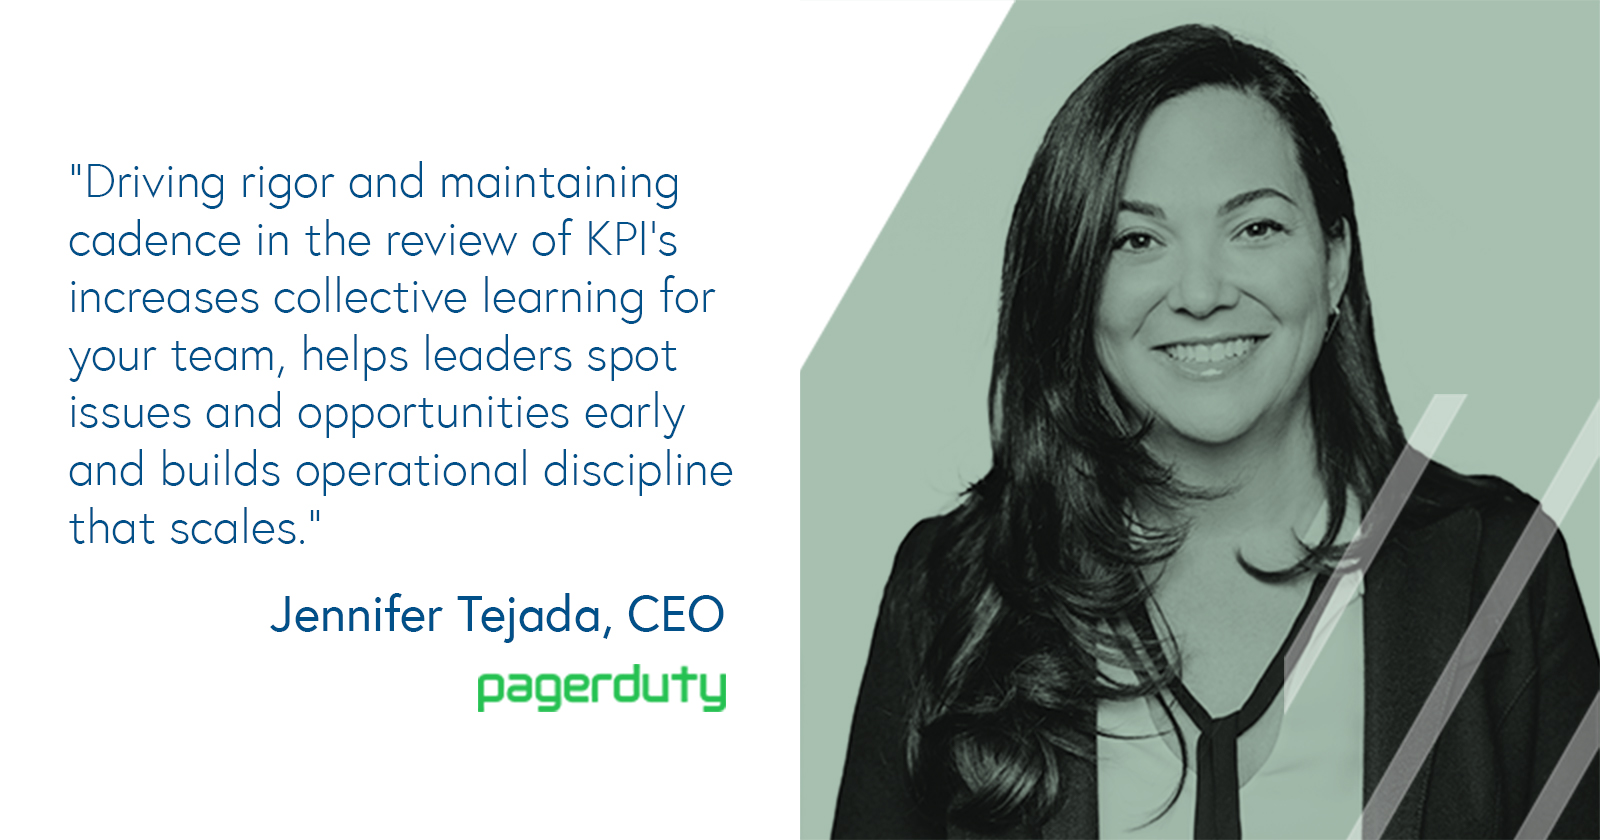 Jennifer Tejada, CEO of PagerDuty on KPI check-ups and metrics dashboards